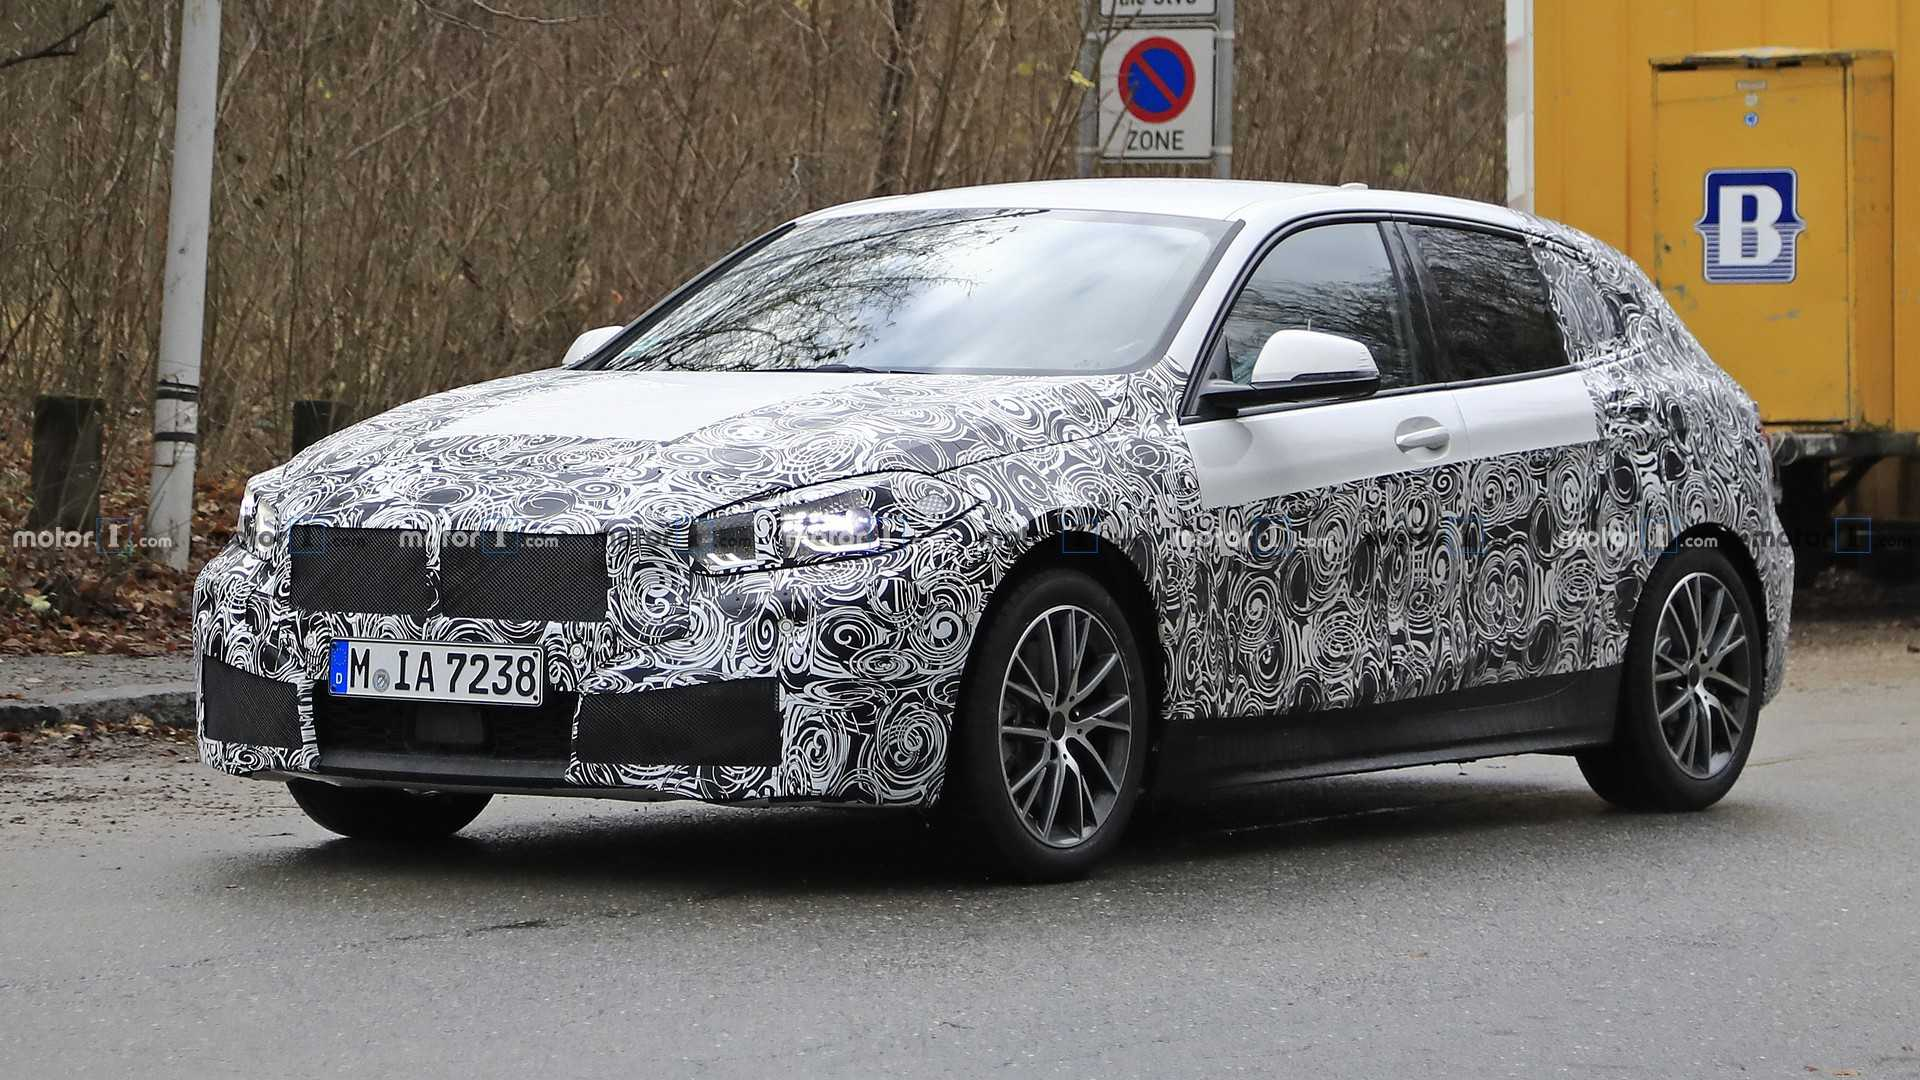 2019 Bmw 1 Series Spied With Production Body And Lights